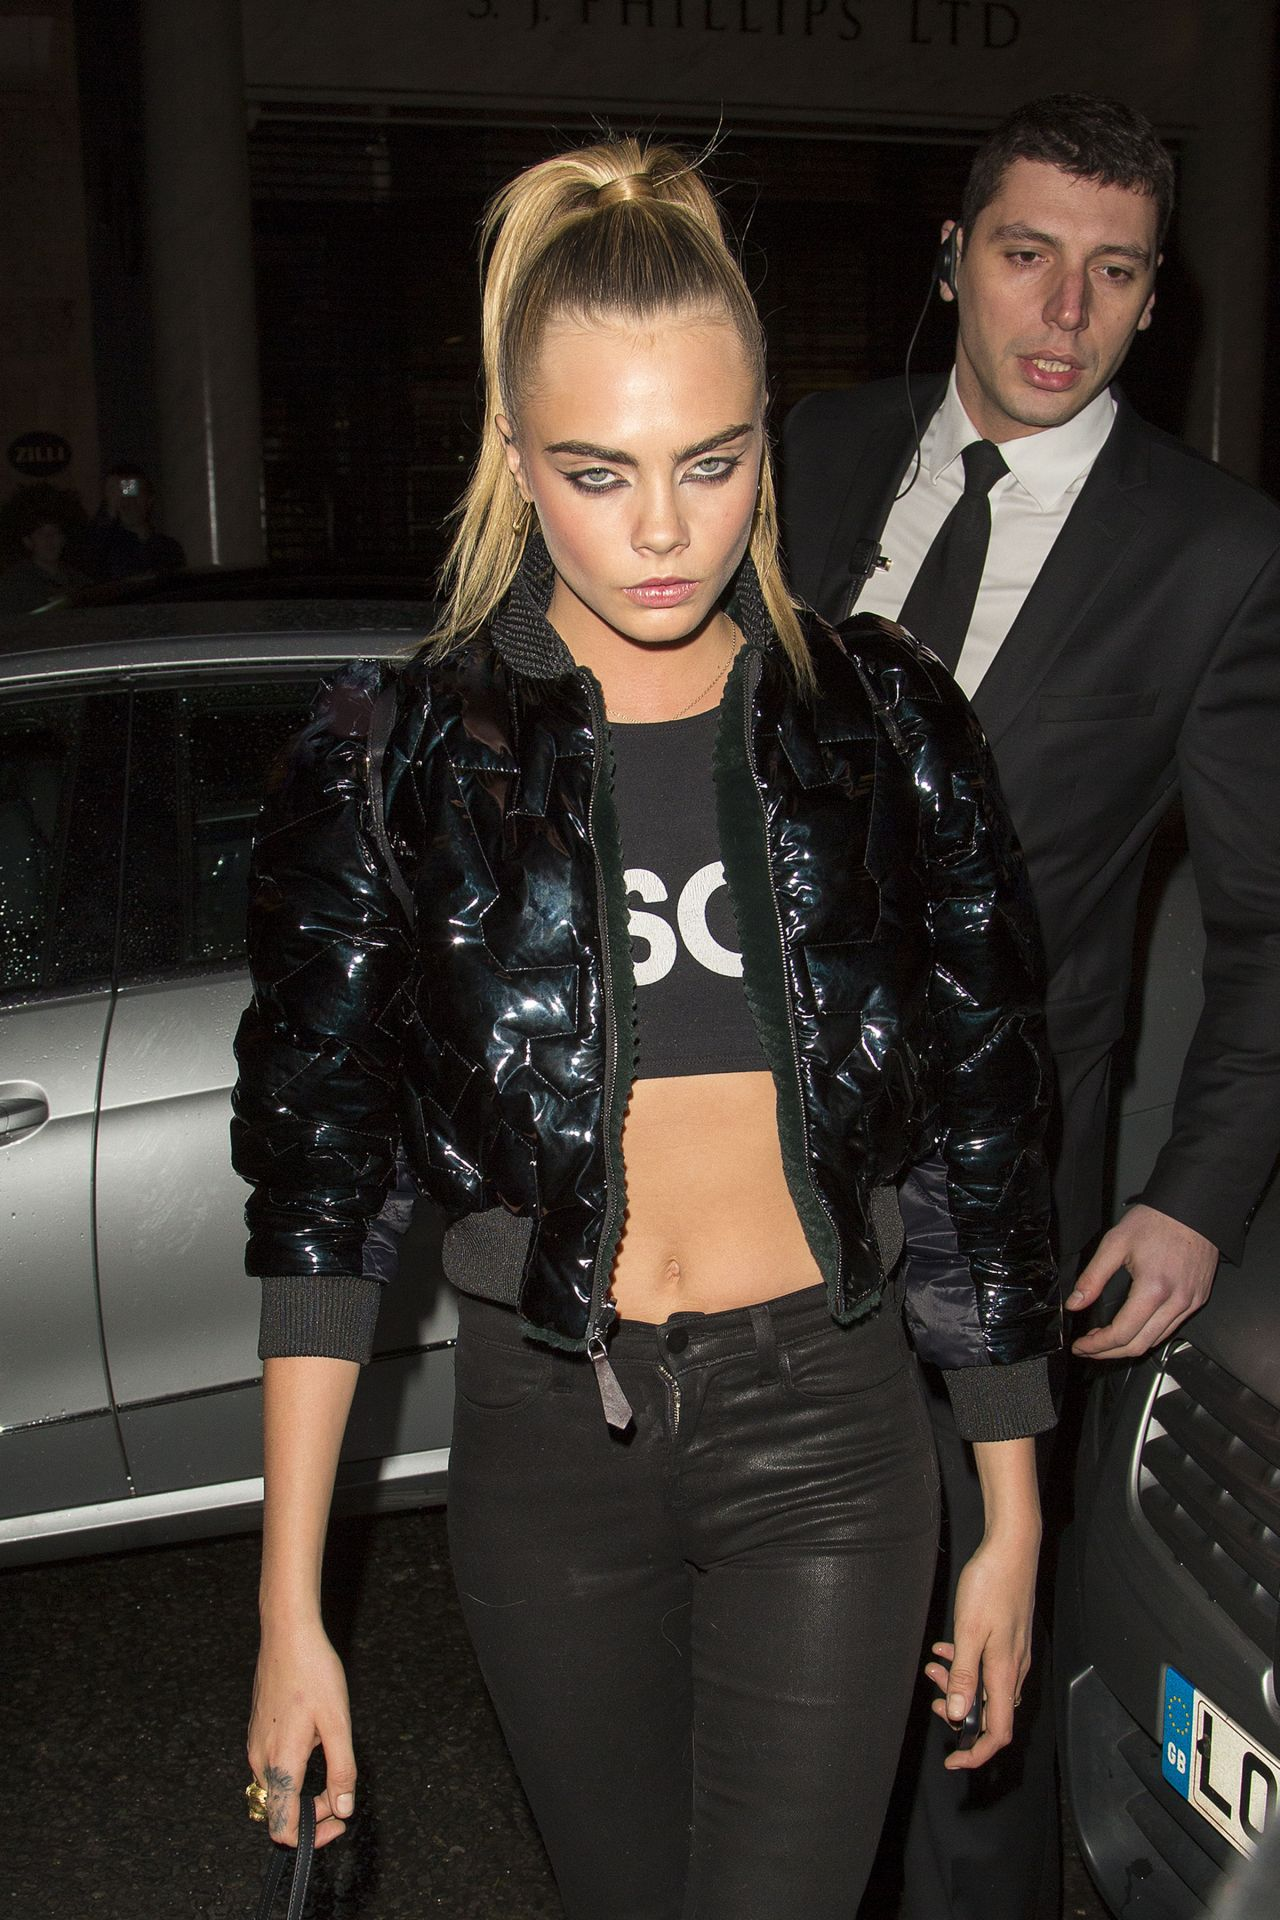 Cara Delevingne In London Fendi Launch After Party May